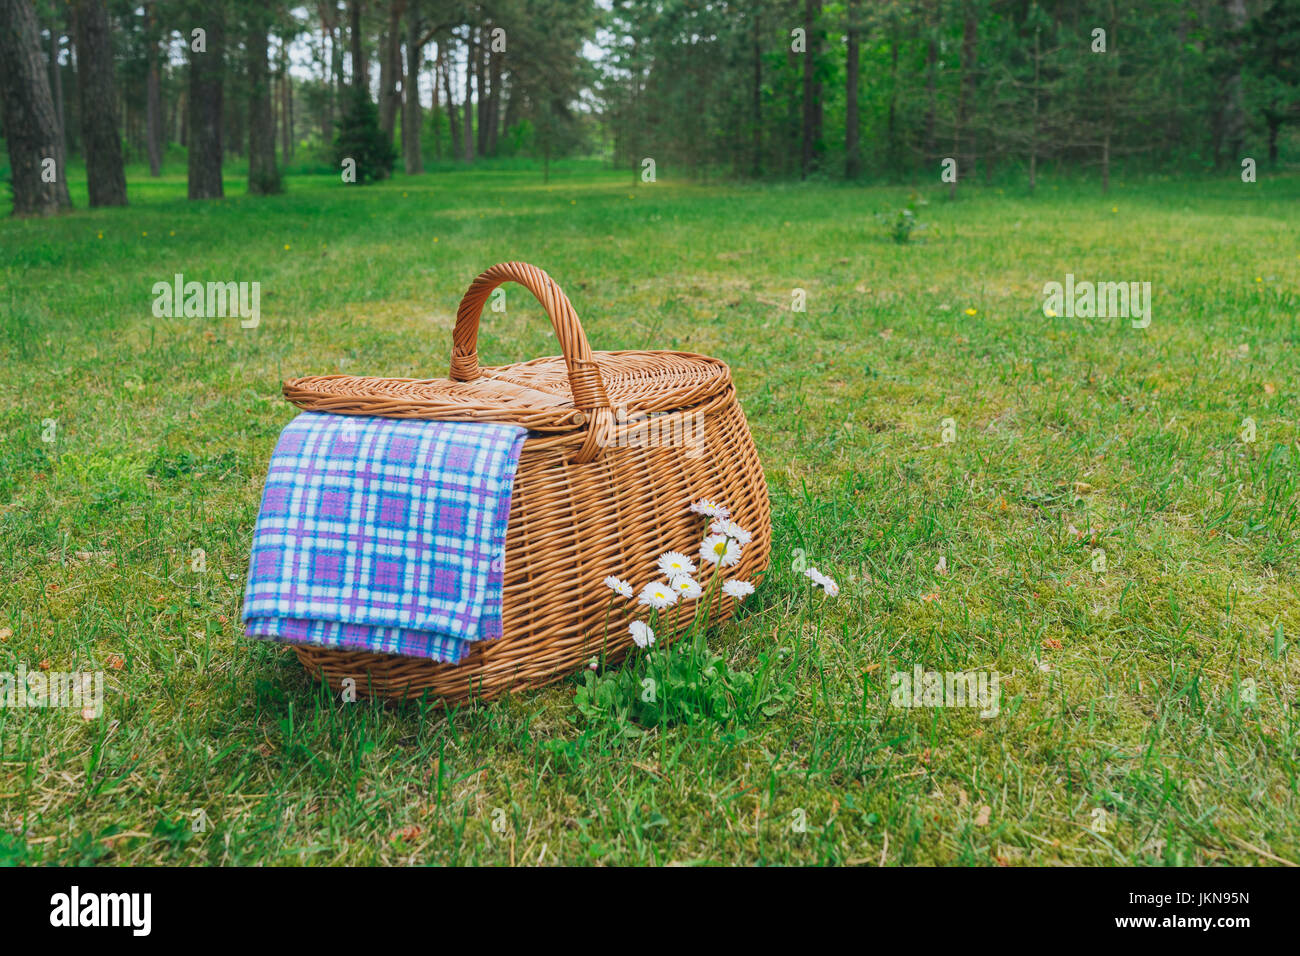 Picnic basket and blue white checkered napkin on lawn with daisy flowers. Forest on background. Weekend break concept - Stock Image